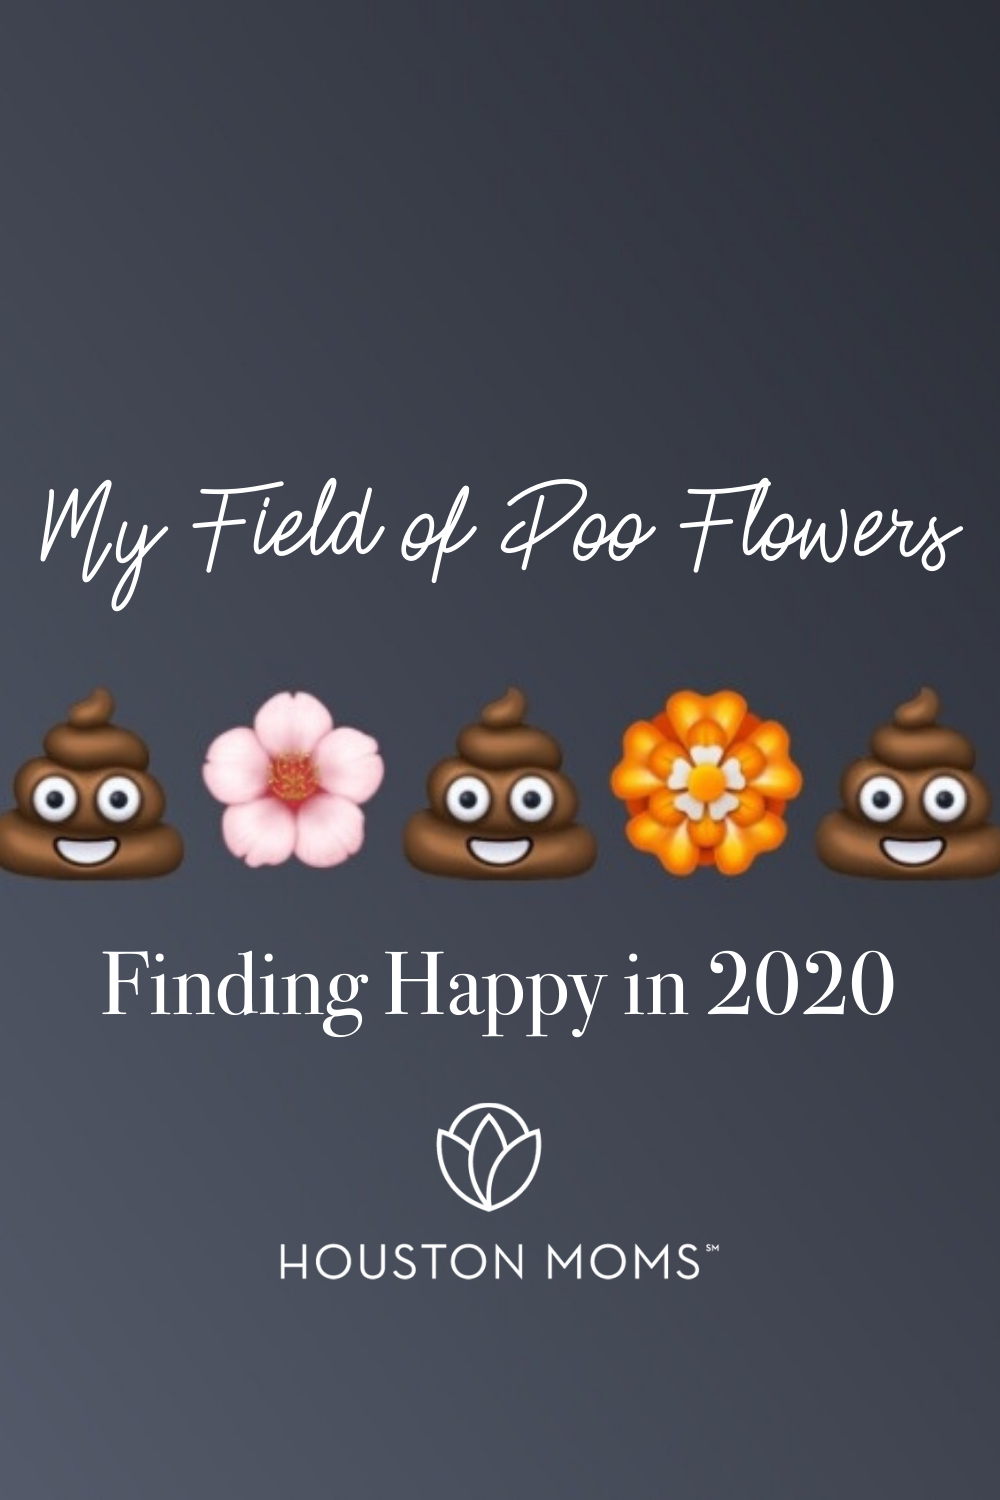 "Houston Moms ""My Field of Poo Flowers:: Finding Happy in 2020"" #houstonmoms #houstonmomsblog #momsaroundhouston"